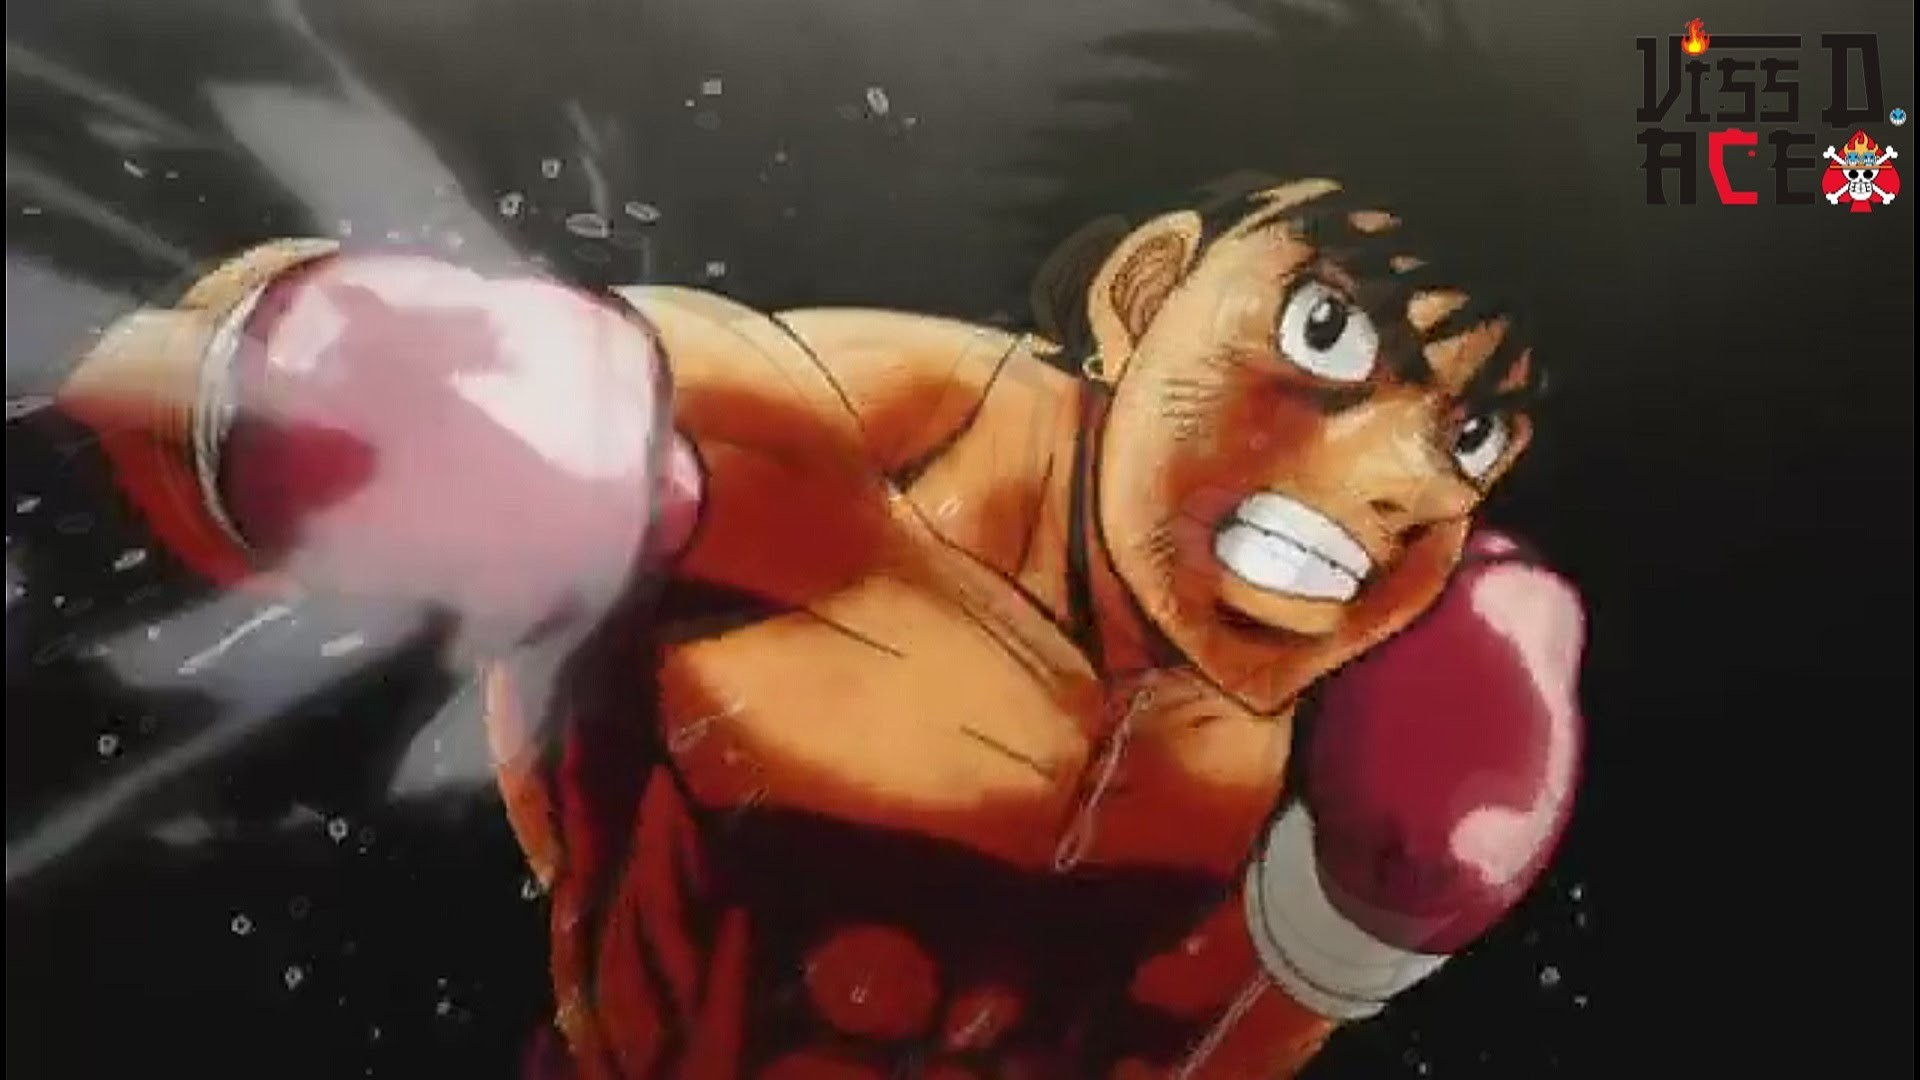 Epic Girl With Gun Wallpaper Hajime No Ippo Wallpapers 68 Images